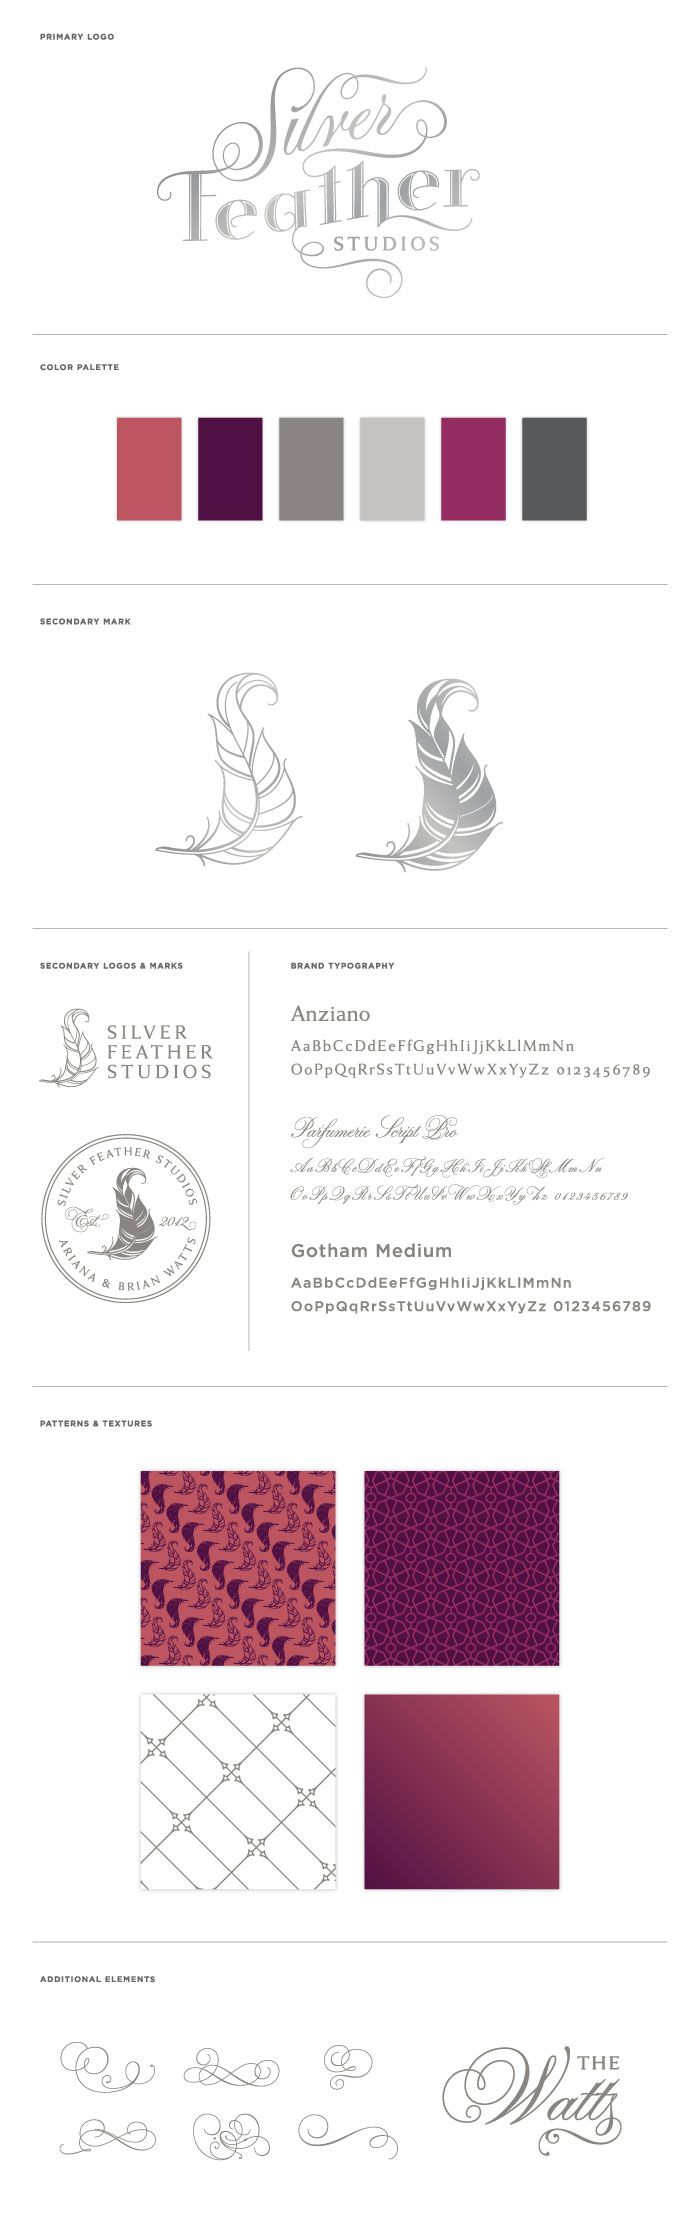 Naming, Brand Development and Identity Design for Silver Feather Studios in North Carolina